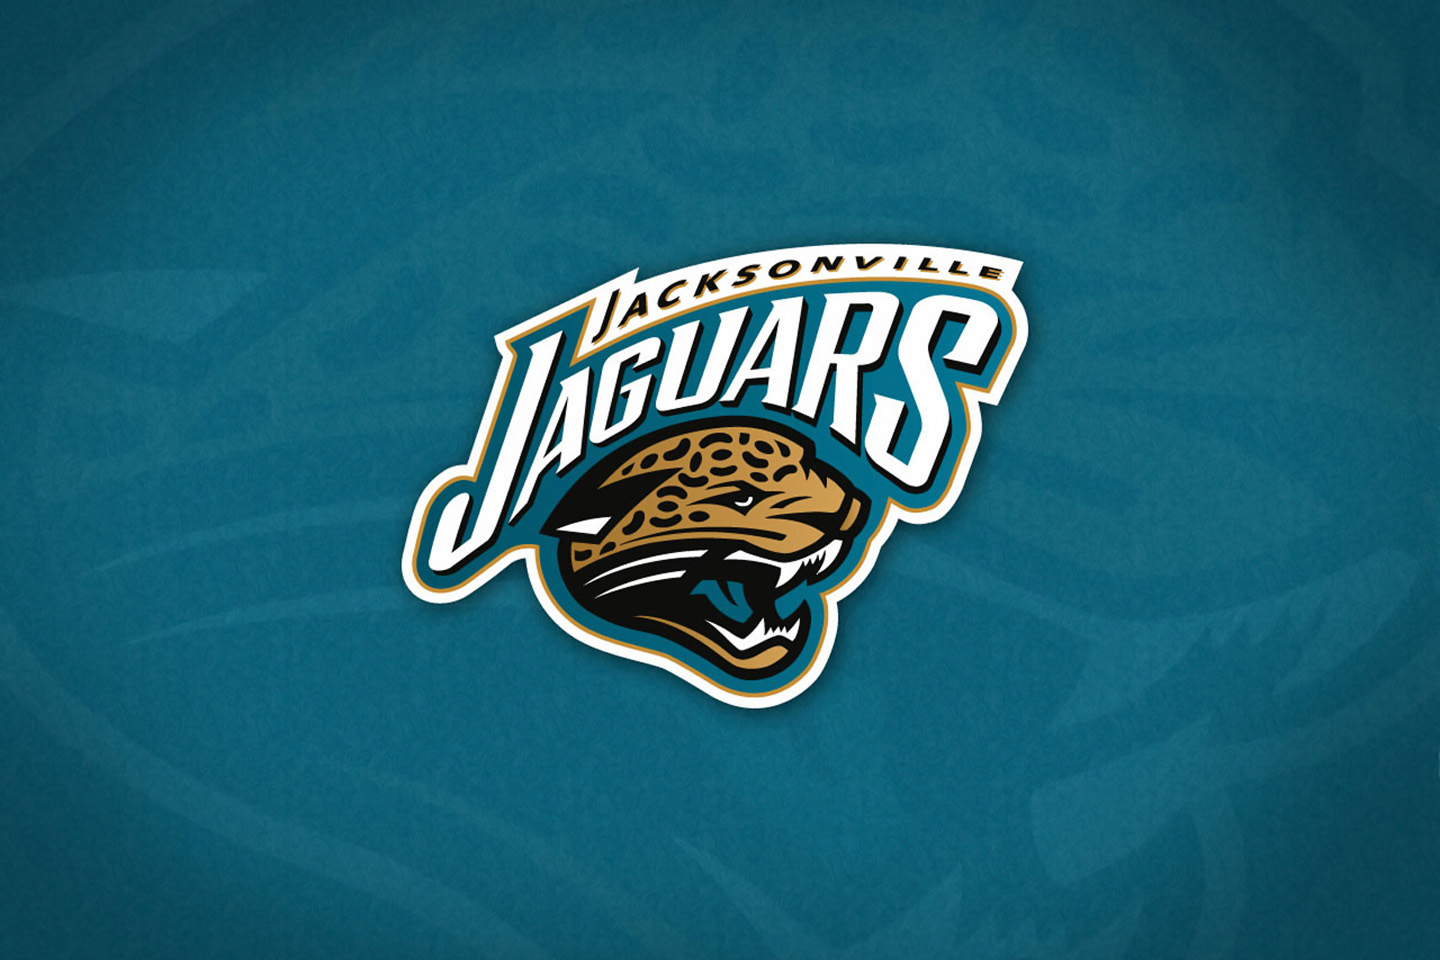 jacksonville jaguars new logo wallpaper - photo #24